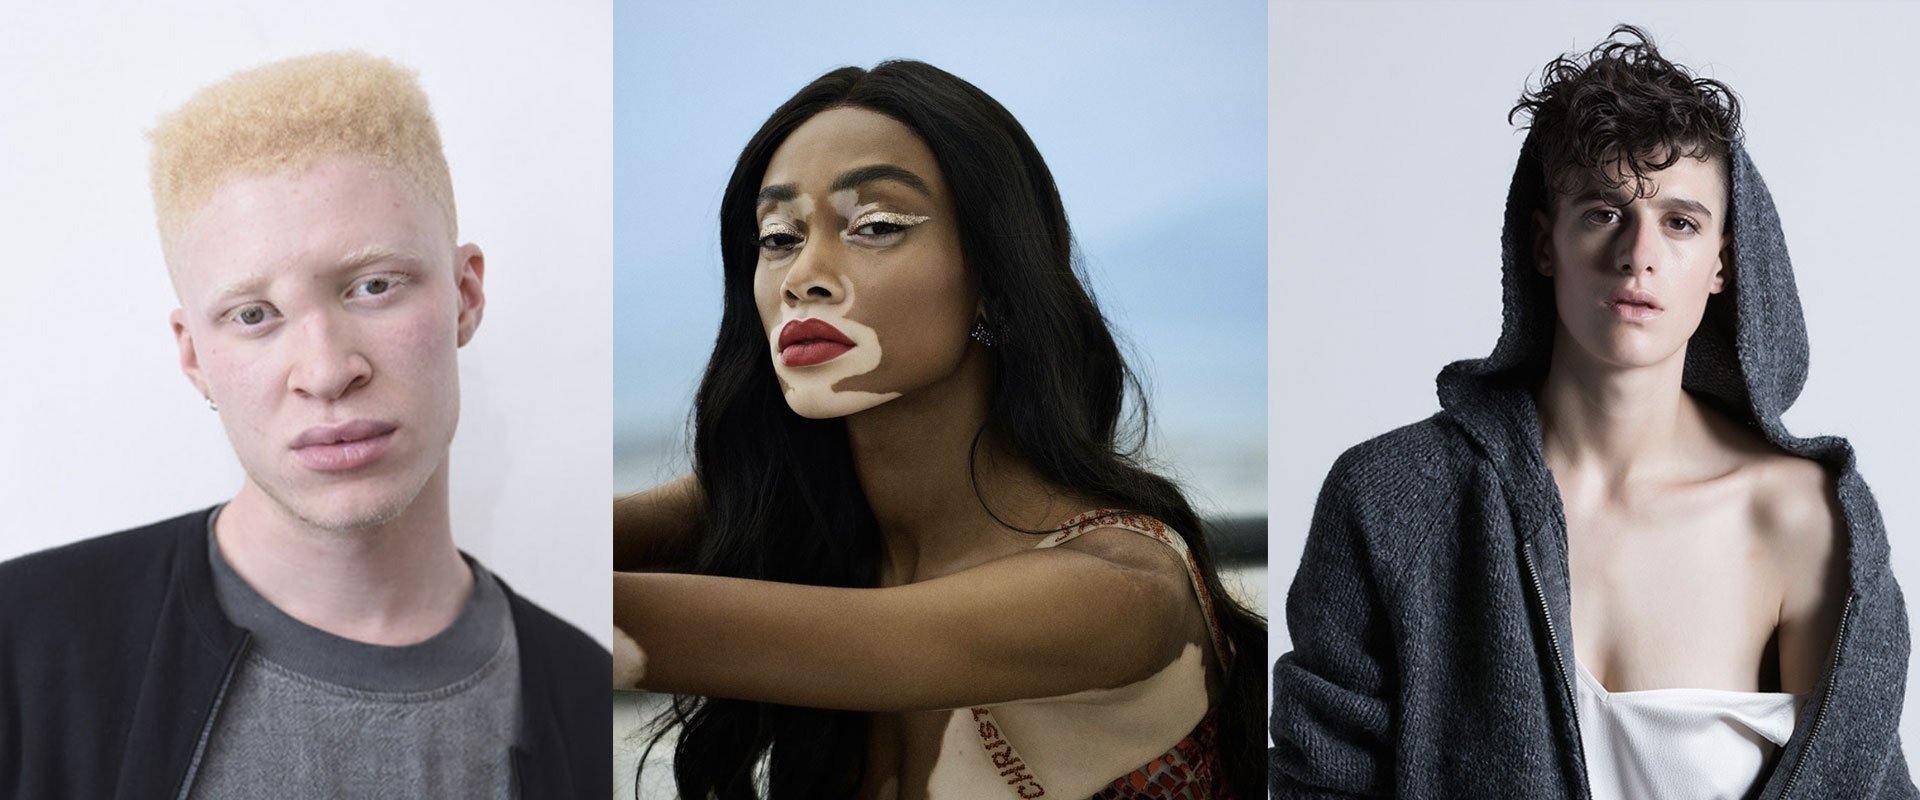 modelli-differenti, winnie harlow, rain dove, shaun ross